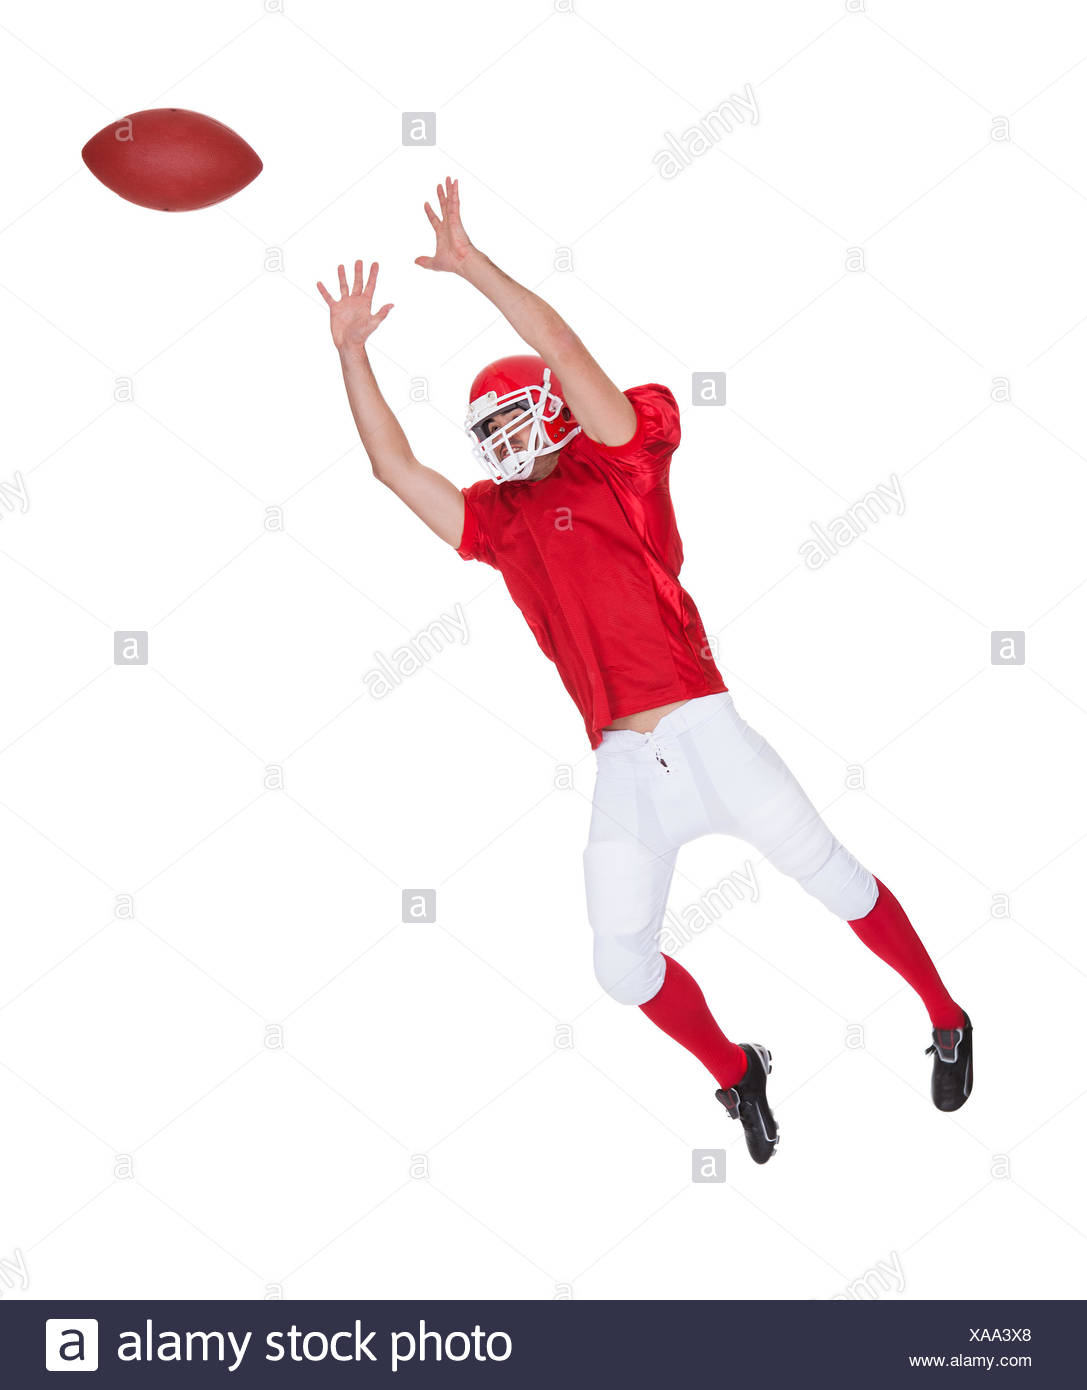 American Football Player Catching Ball Isolated On White